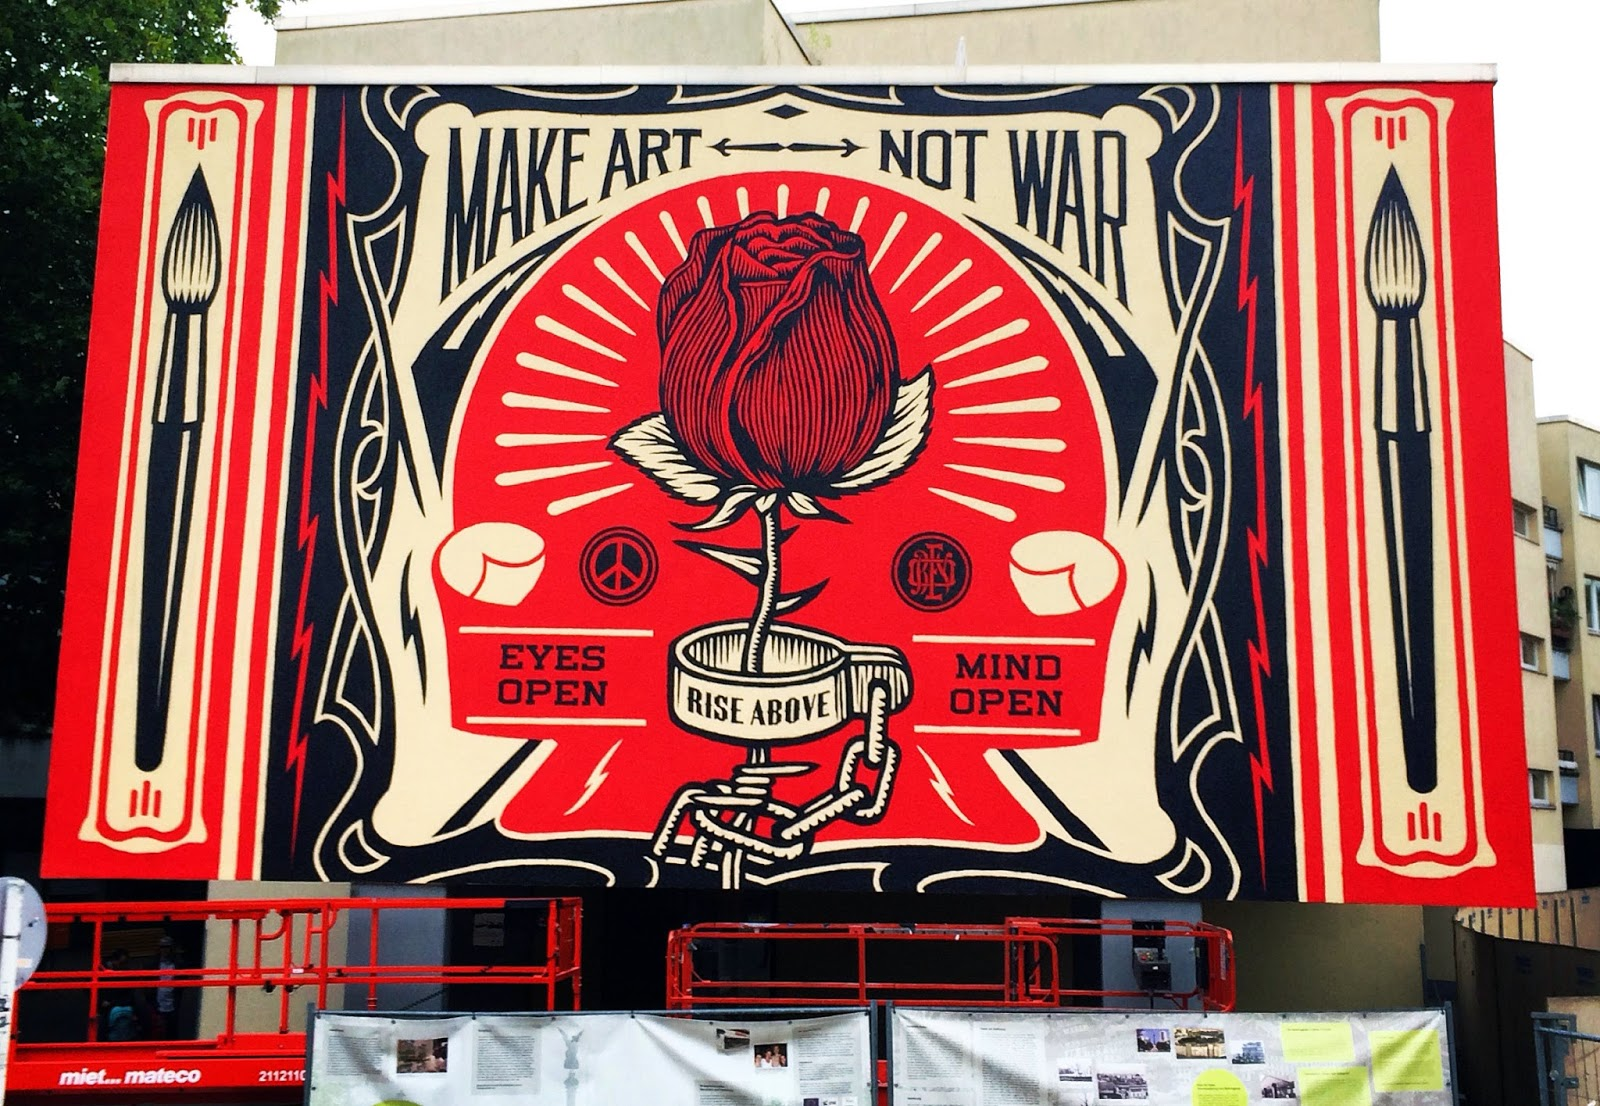 Mural Painting On Wall Streetartnews Shepard Fairey Unveils Make Art Not War